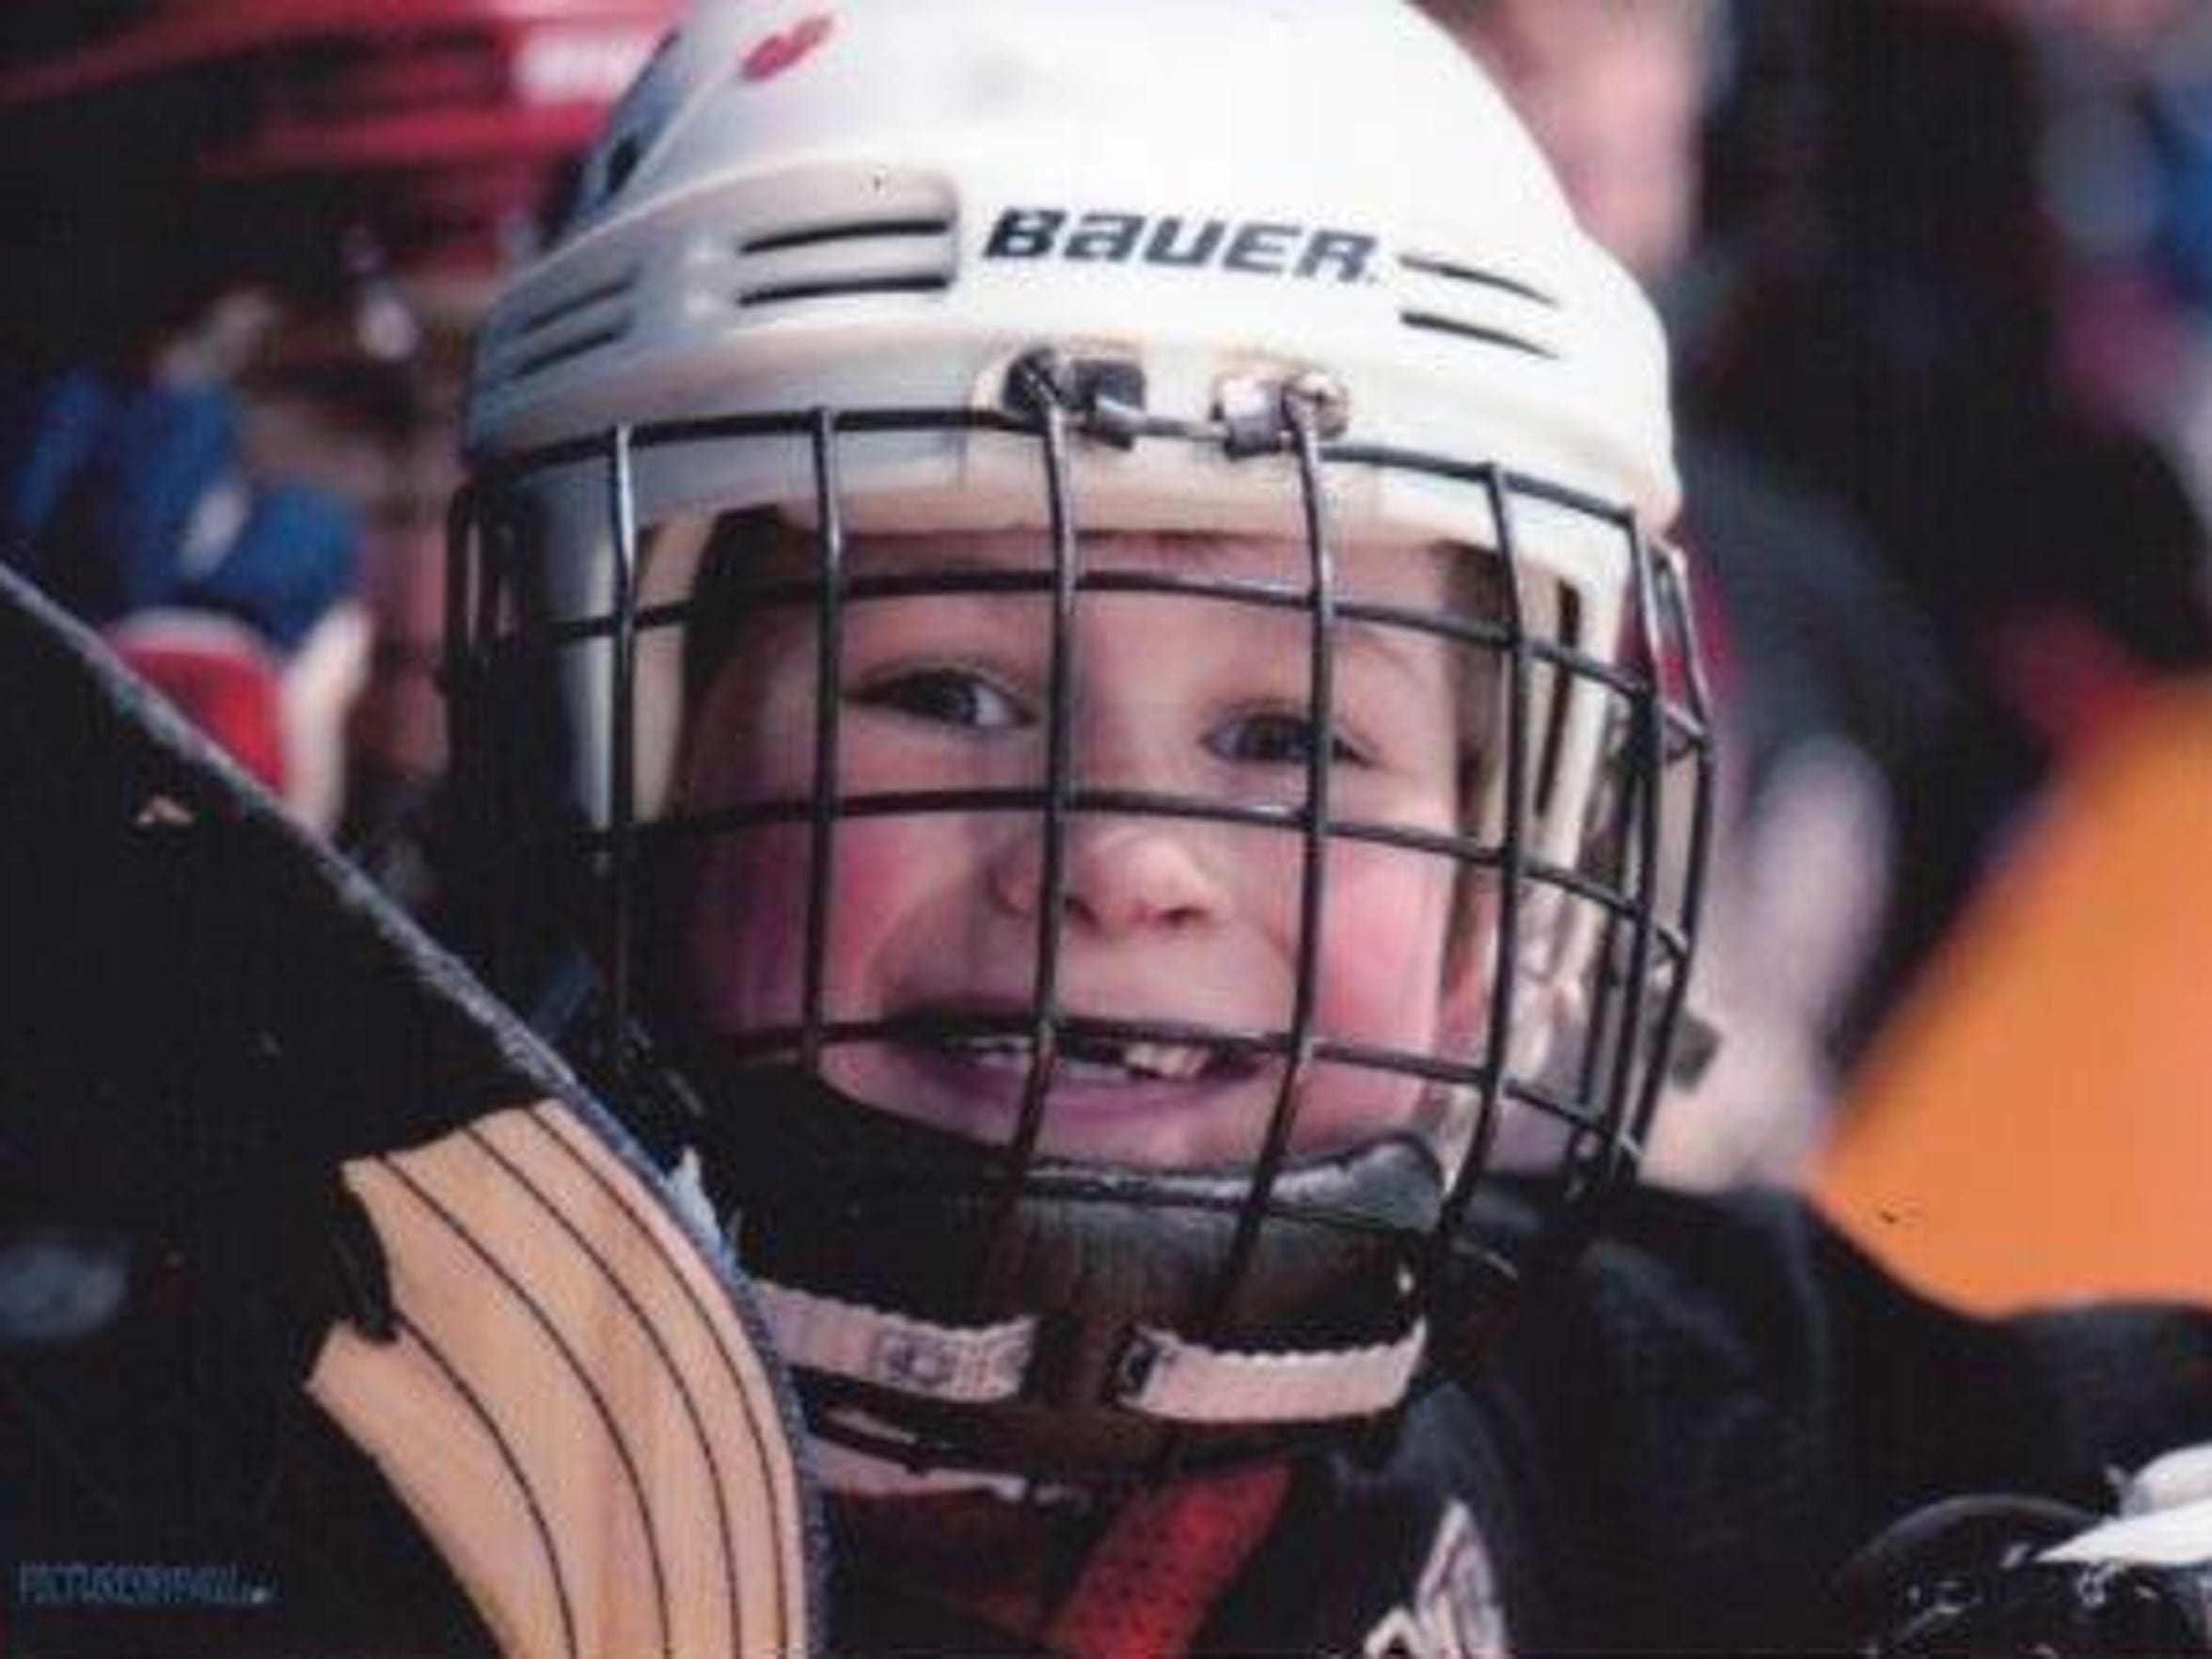 Larkin loved hockey growing up. Here he is at age 7,